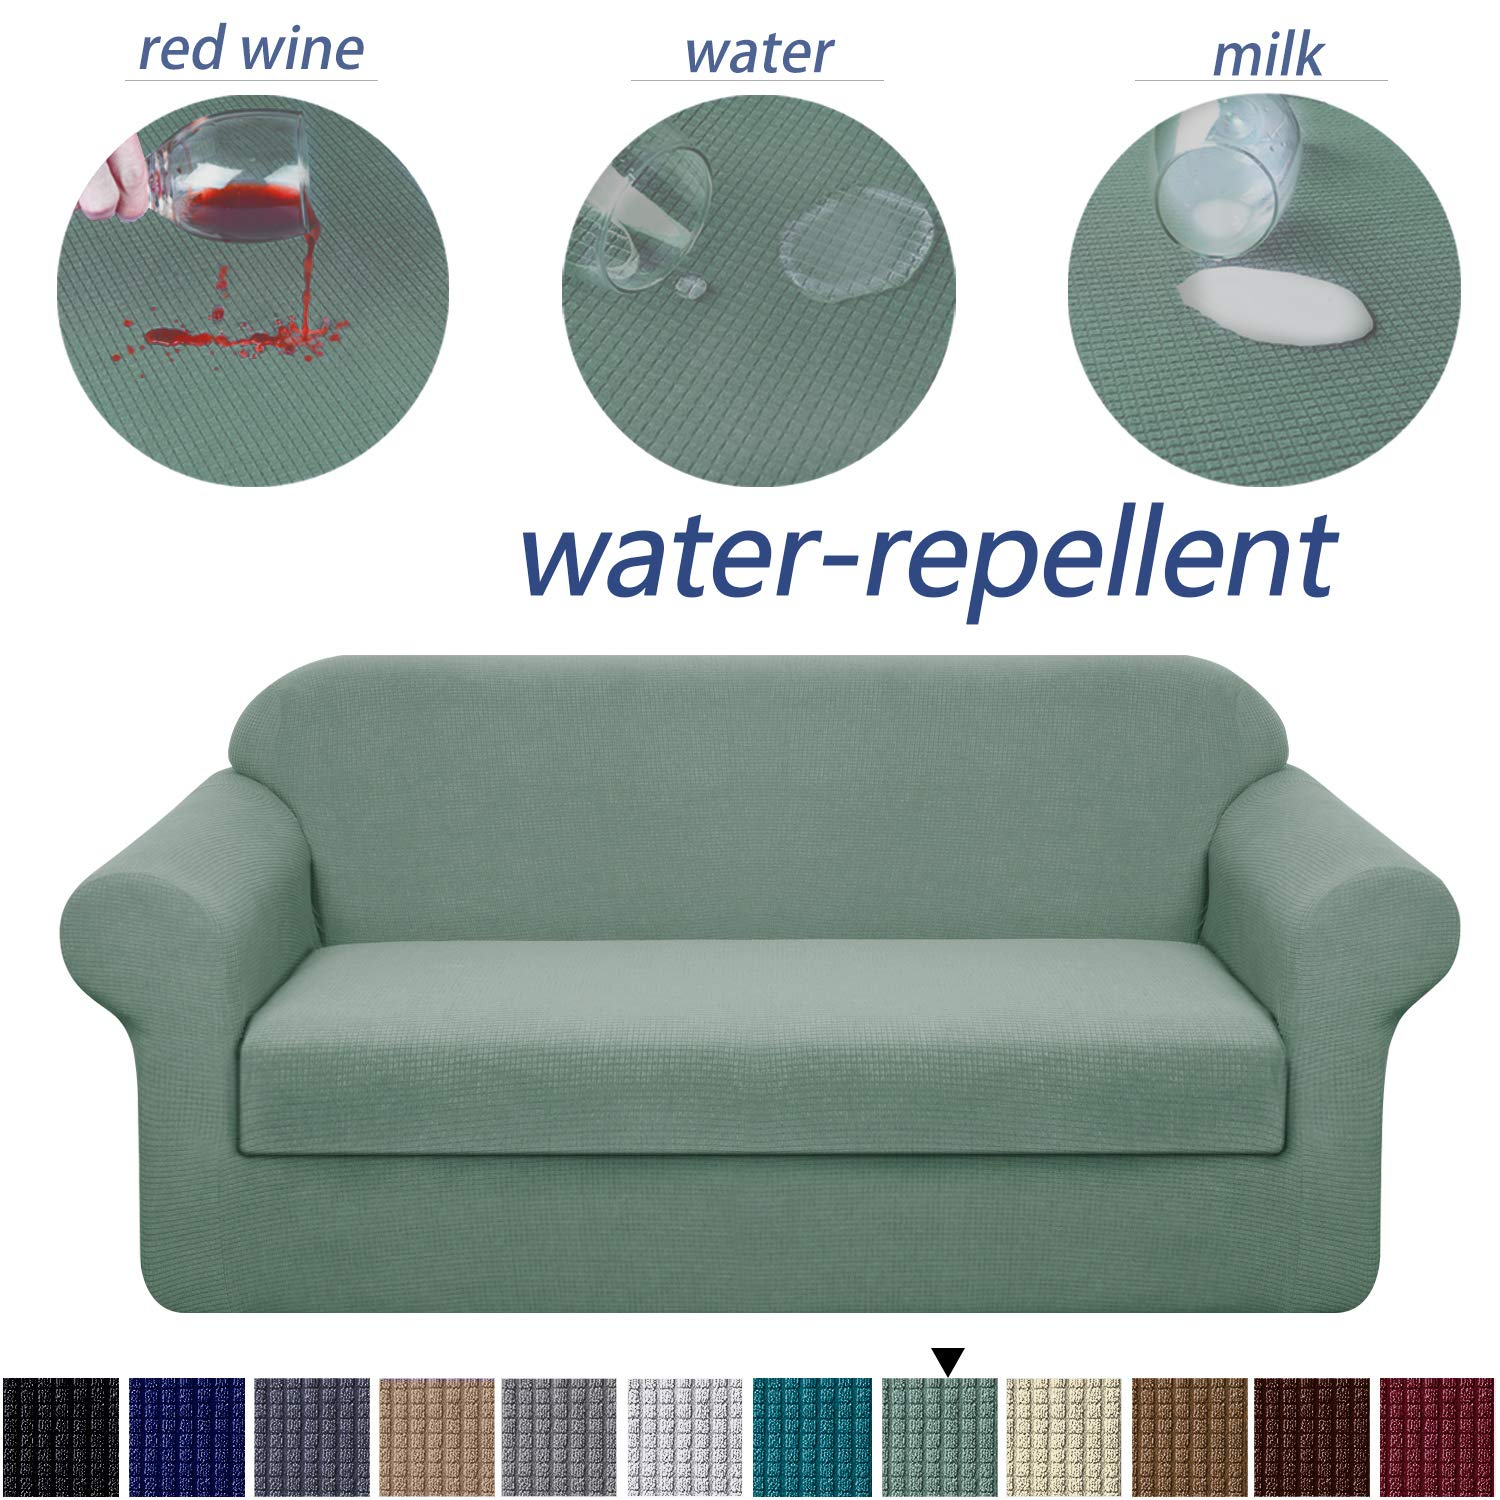 Granbest Stretch Sofa Slipcovers 3 Cushion Couch Covers Water-Repellent Pet Furniture Covers Dog Couch Protectors (Matcha Green, XLarge-2 Pieces)